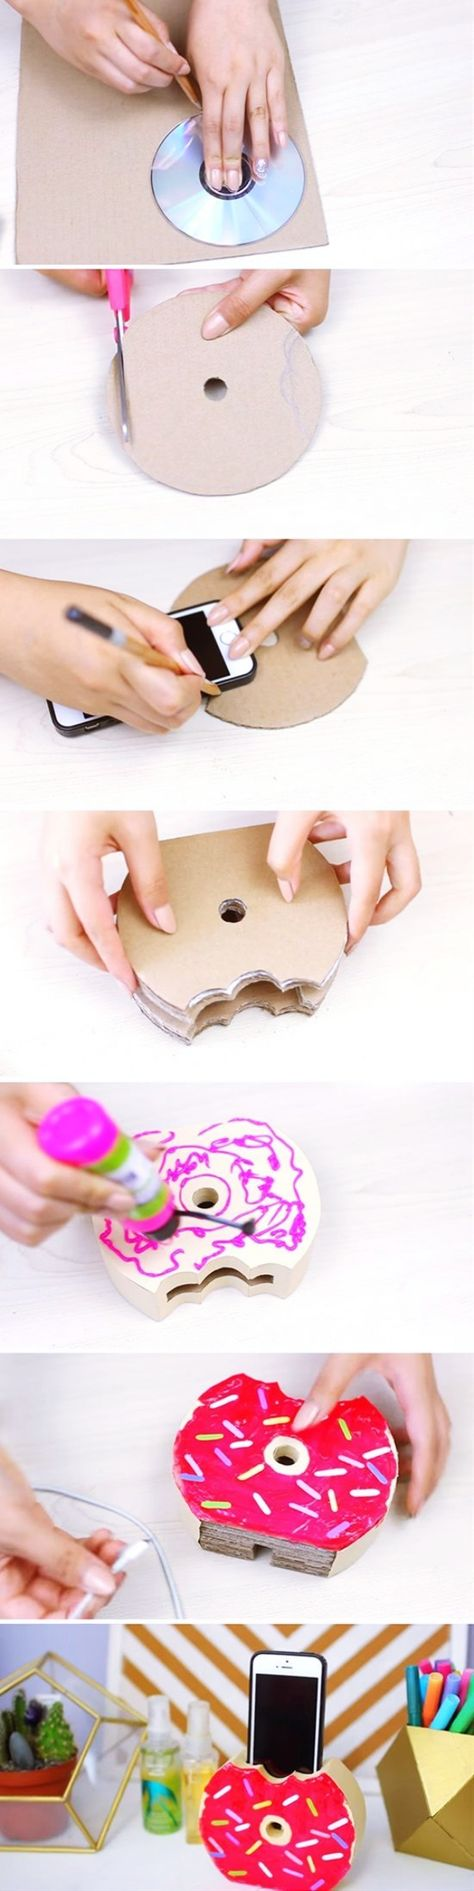 14 simple DIY accessories for your phone Postris . - 14 simple DIY accessories for your phone Postris - Kids Crafts, Crafts For Teens To Make, Gifts For Teens, Diy For Teens, Diy Crafts To Sell, Easy Crafts, Crafts With Friends, Diy Room Decor For Teens Easy, Teen Diy